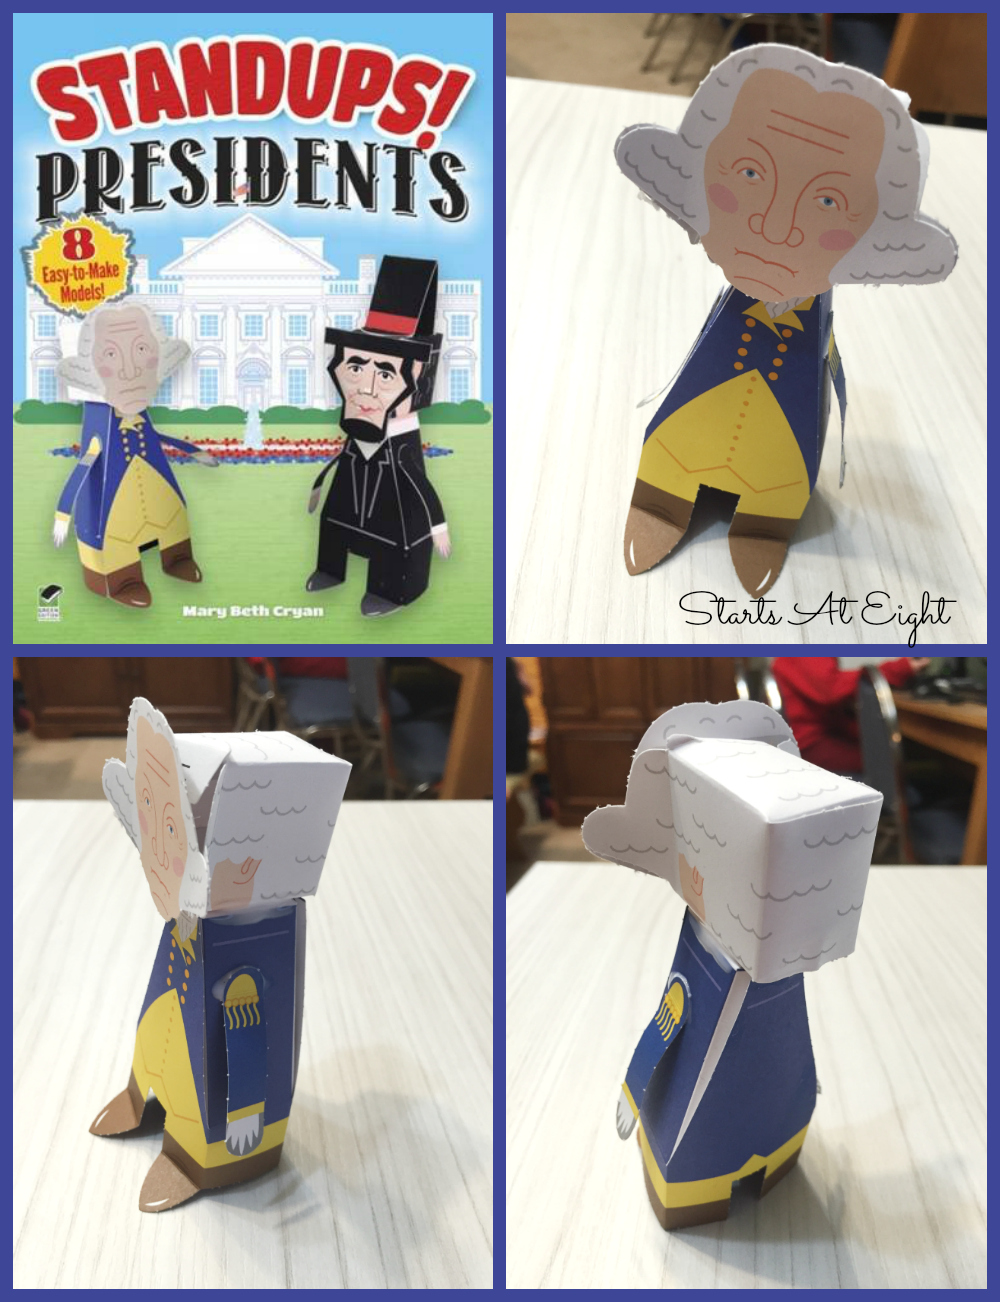 StandUps! Presidents Collage